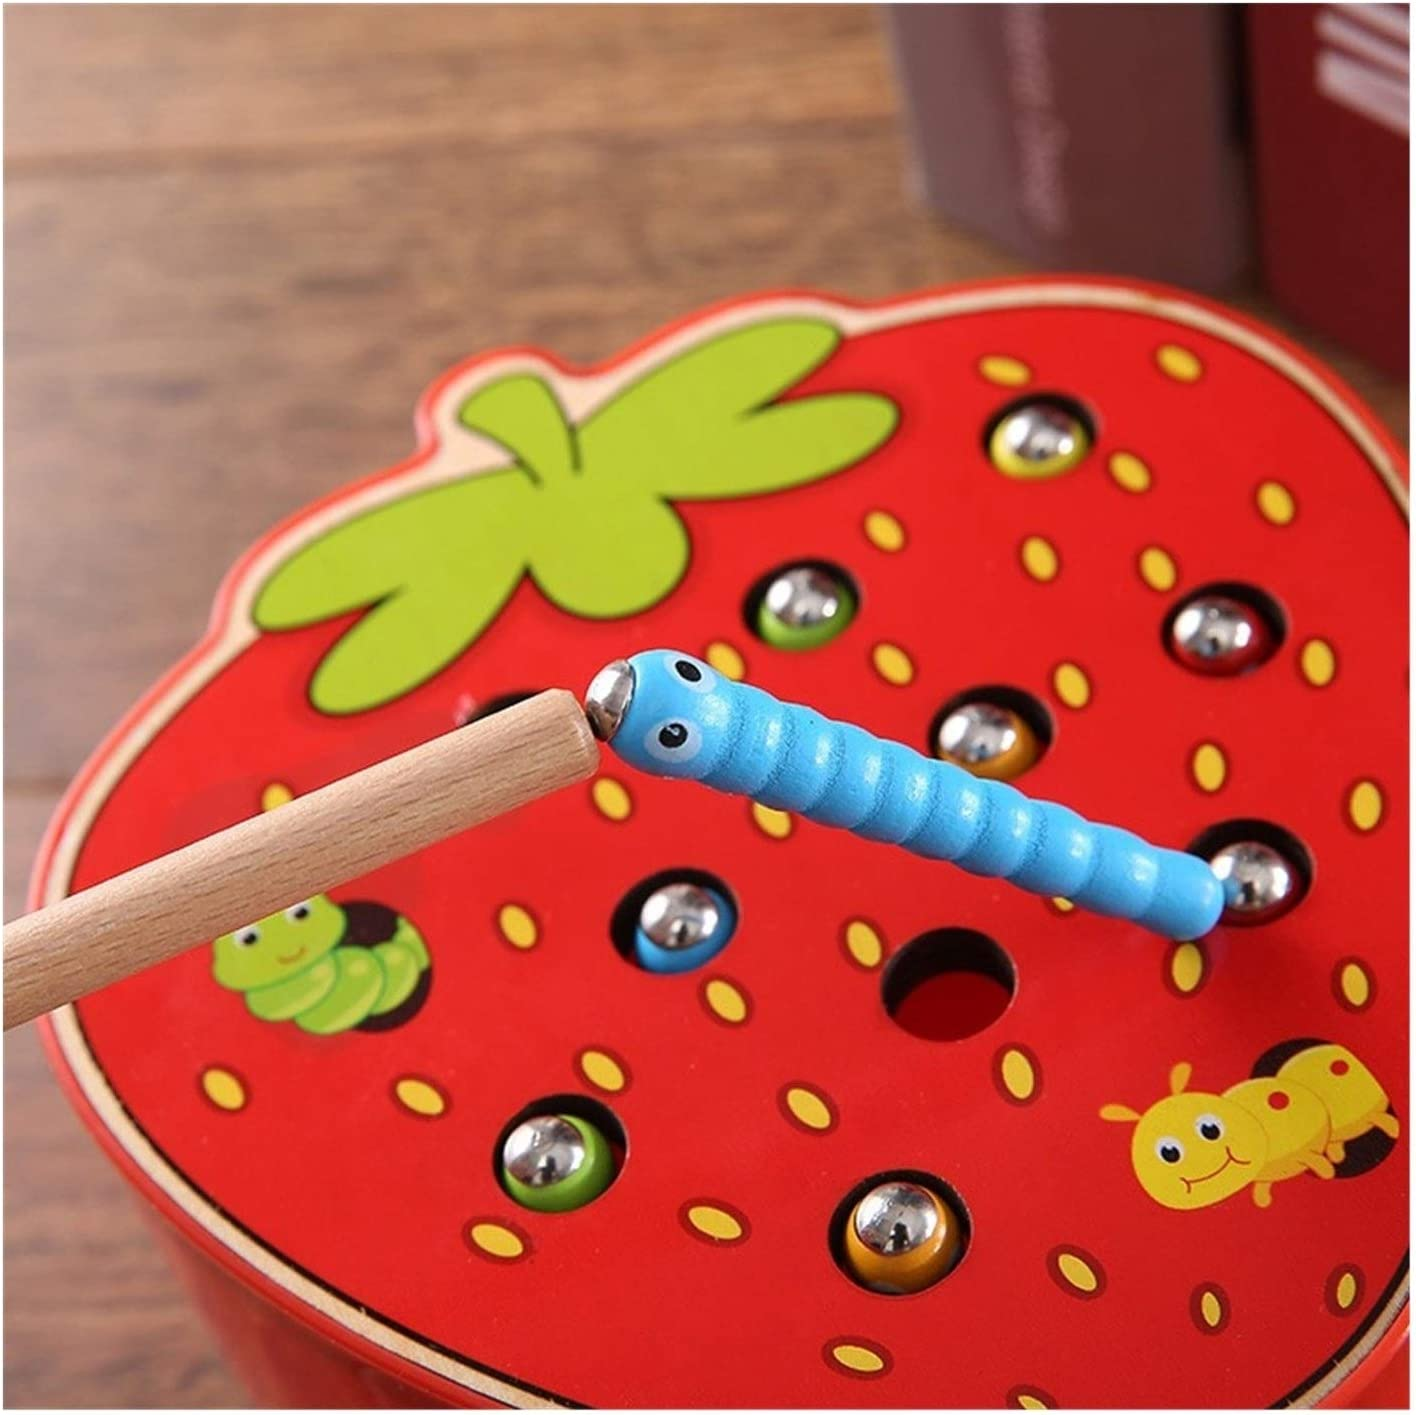 LEXING Baby Montessori Wooden Toys Magnetic Catch Worms 3D Puzzel Educational Game Fishing Color Math Kinderen spelletjes for 1 2 3 jaar oud (Color : Pear TJ266C) Strawberry TJ265C